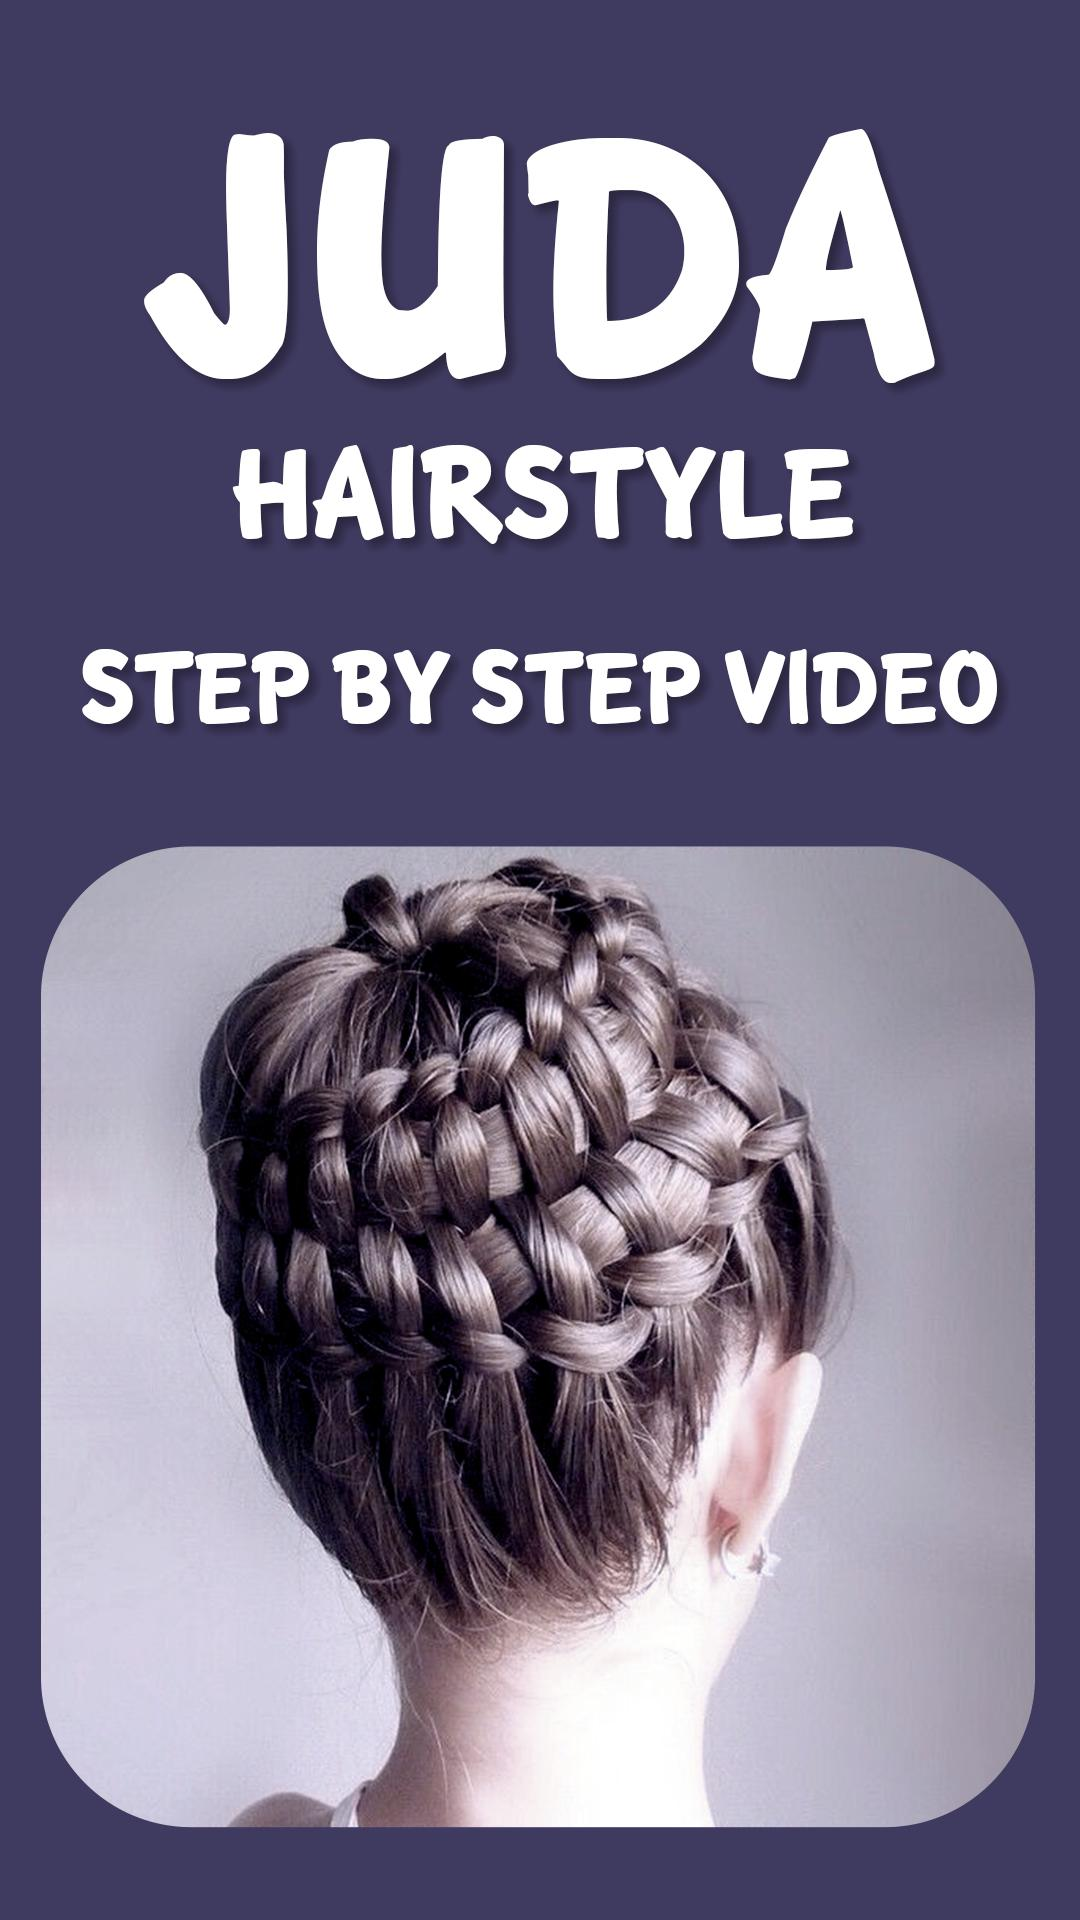 juda hairstyle step by step video pour android - téléchargez